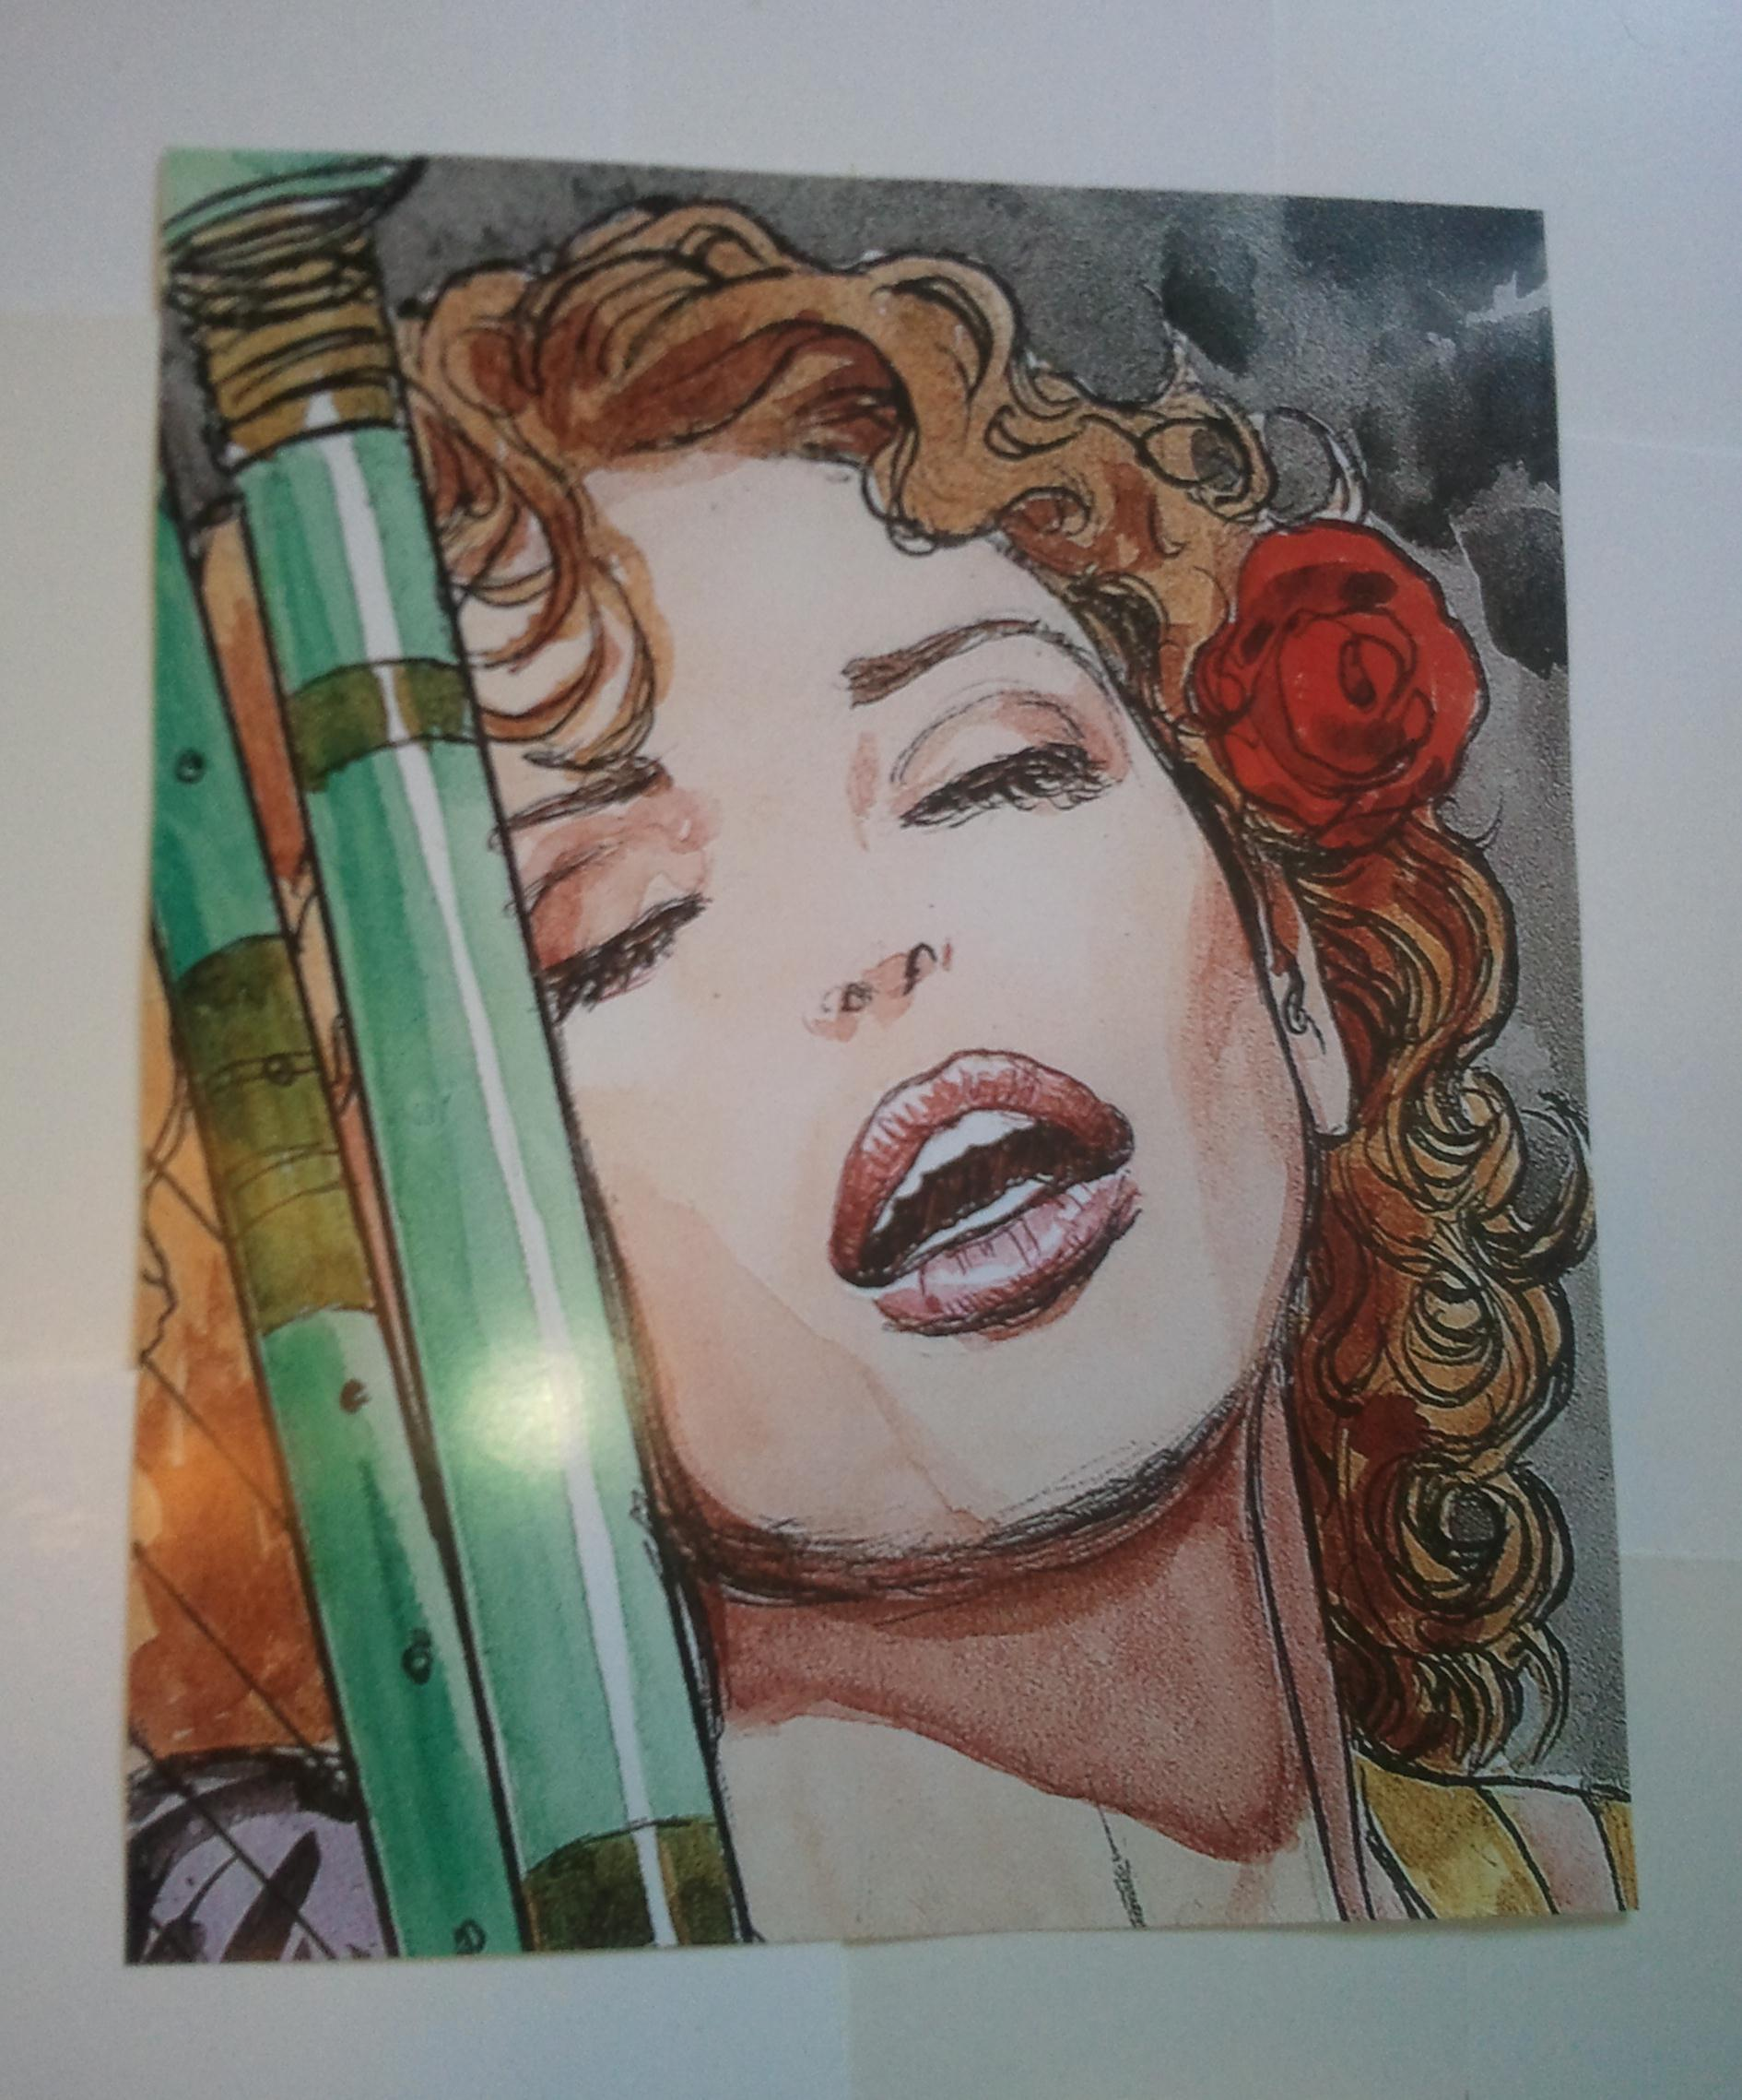 Details About Sandman Pin Up 99 What I Ve Tasted Of Desire By Milo Manara Rose